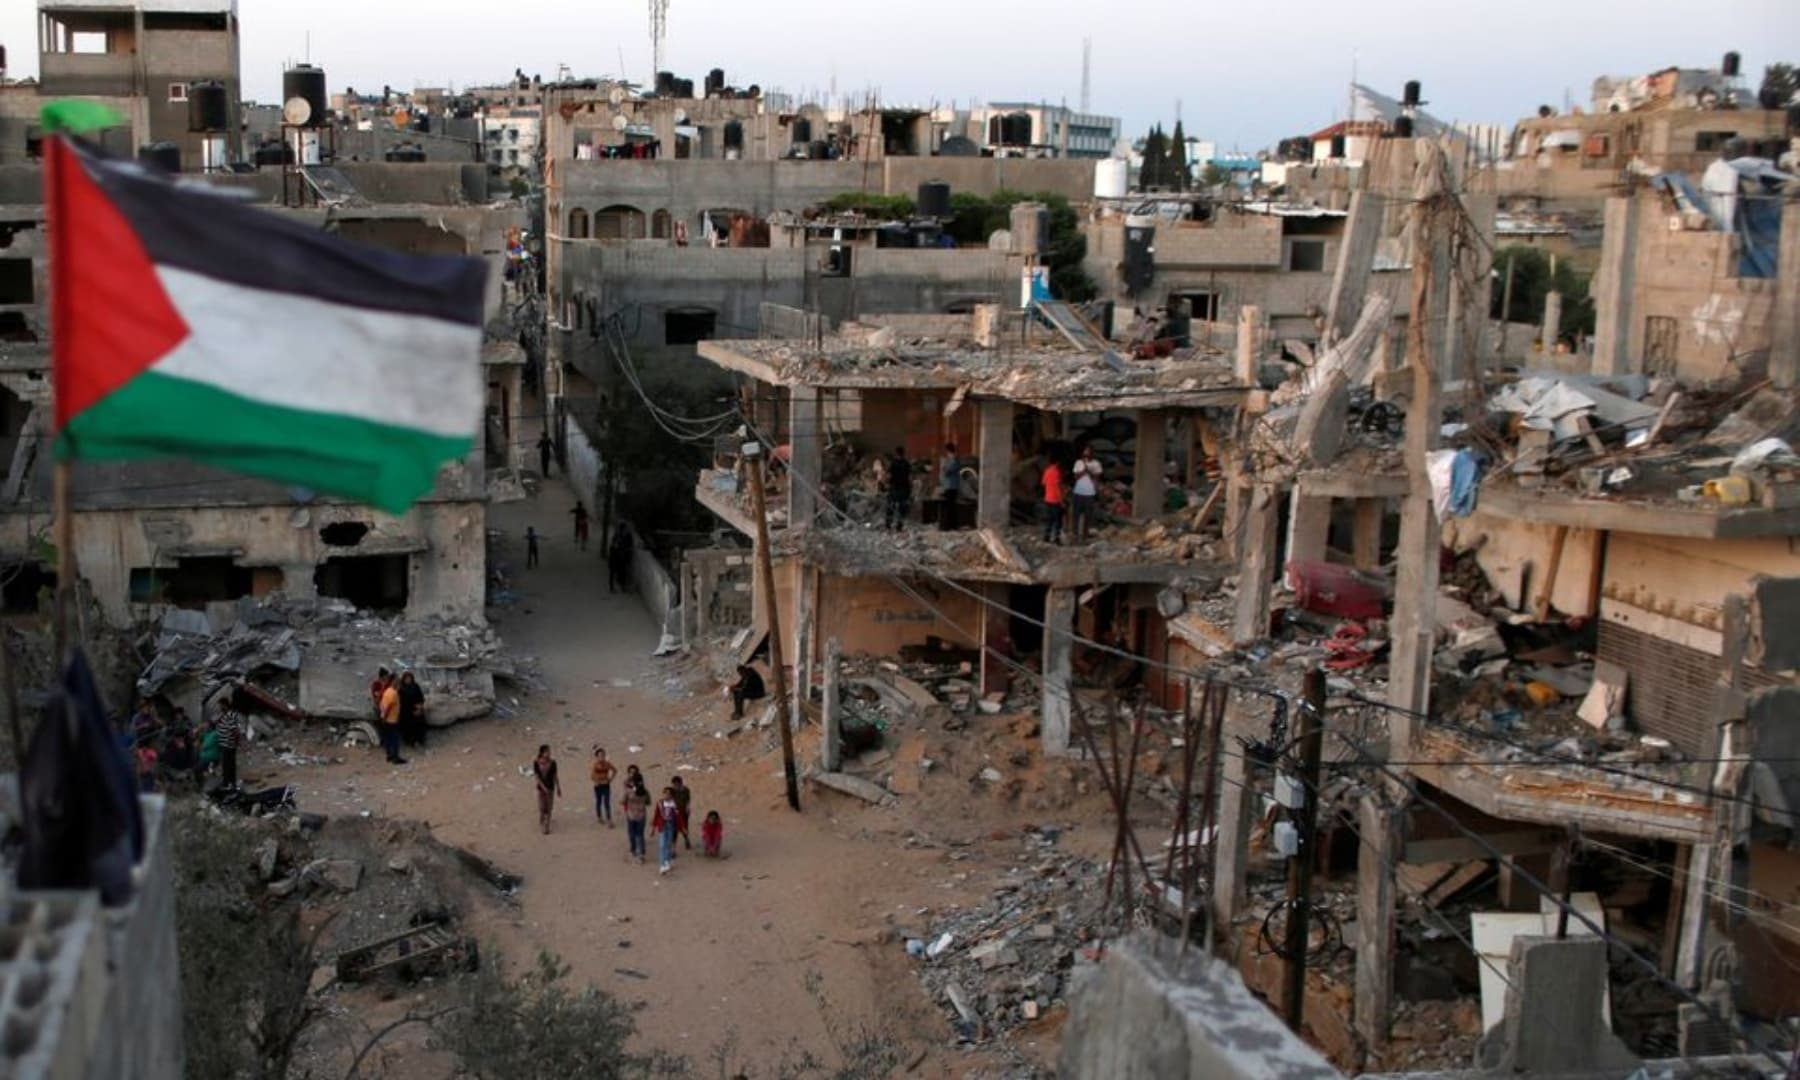 A Palestinian flag flies as the ruins of houses, which were destroyed by Israeli air strikes during the Israeli attacks on the Gaza Strip, May 25, 2021. — Reuters